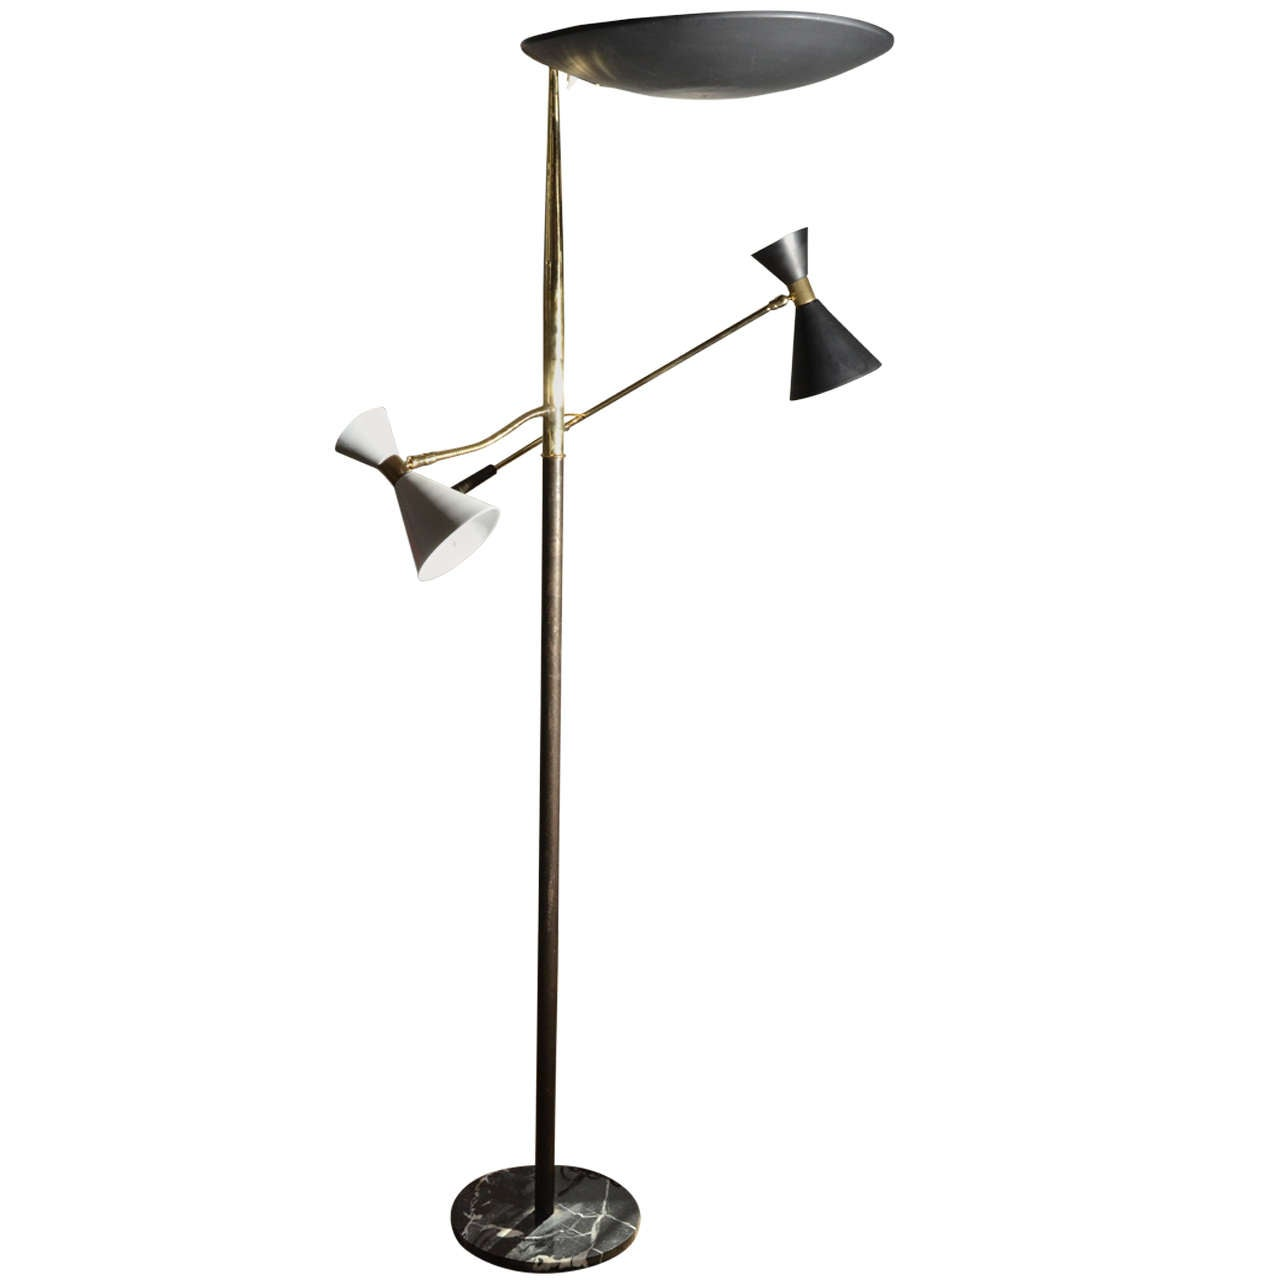 1950's Italian  Stilnovo Floor Lamp